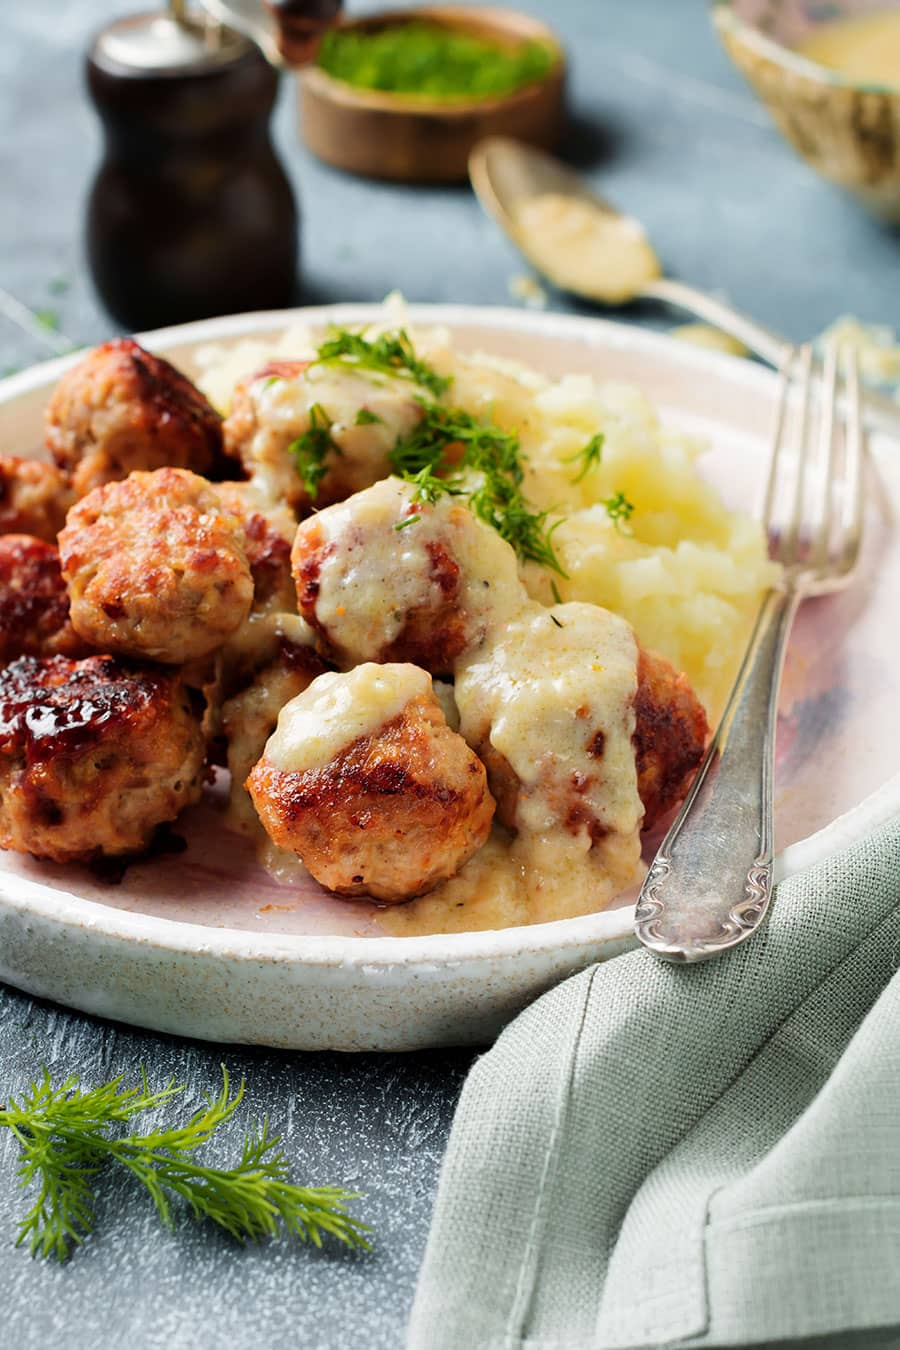 Romanian Meatballs with Sour Cream and Dill